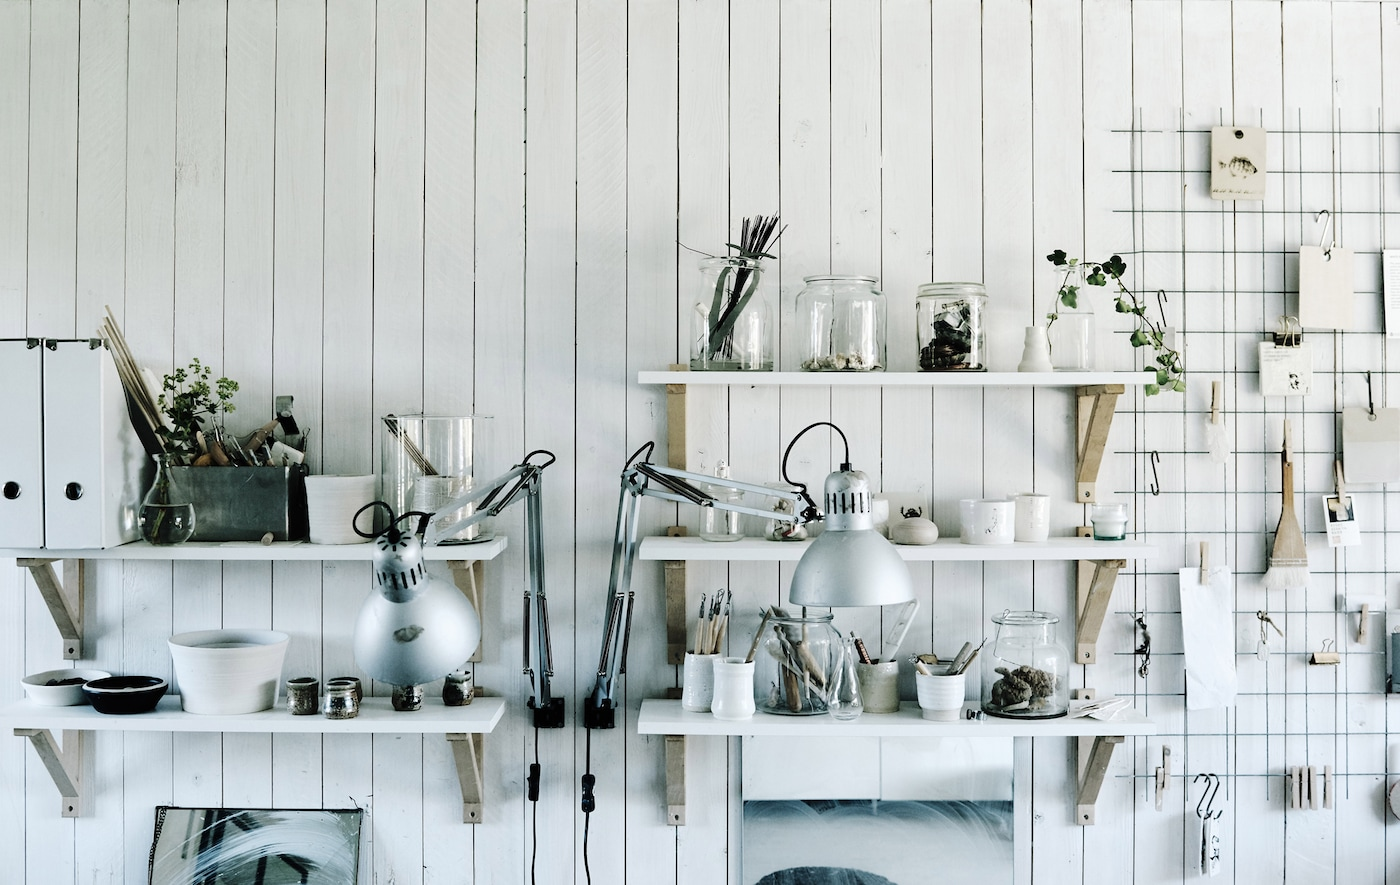 An open pantry with white shelves that hold clear jars and glassware and a wire rack with clip-on utensils and papers.